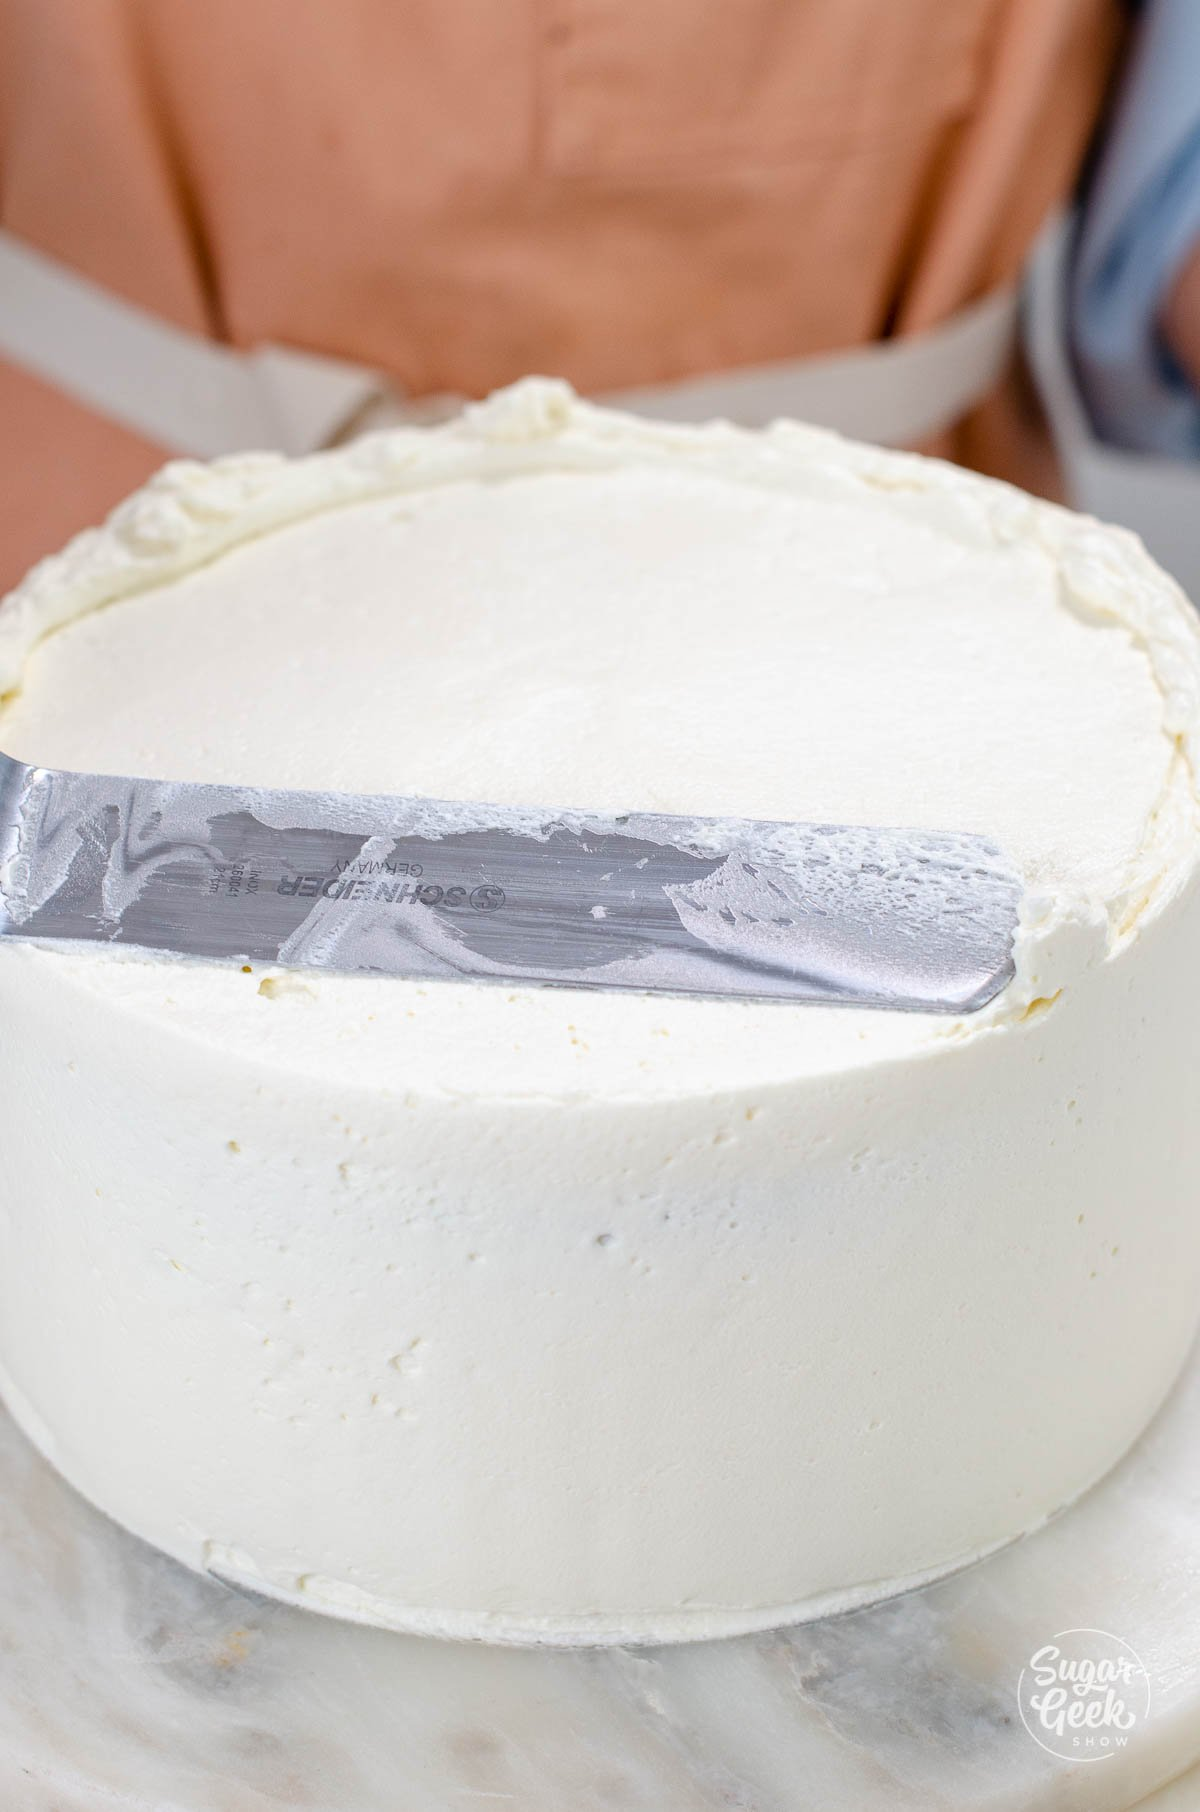 smoothing out the frosting with an offset spatula